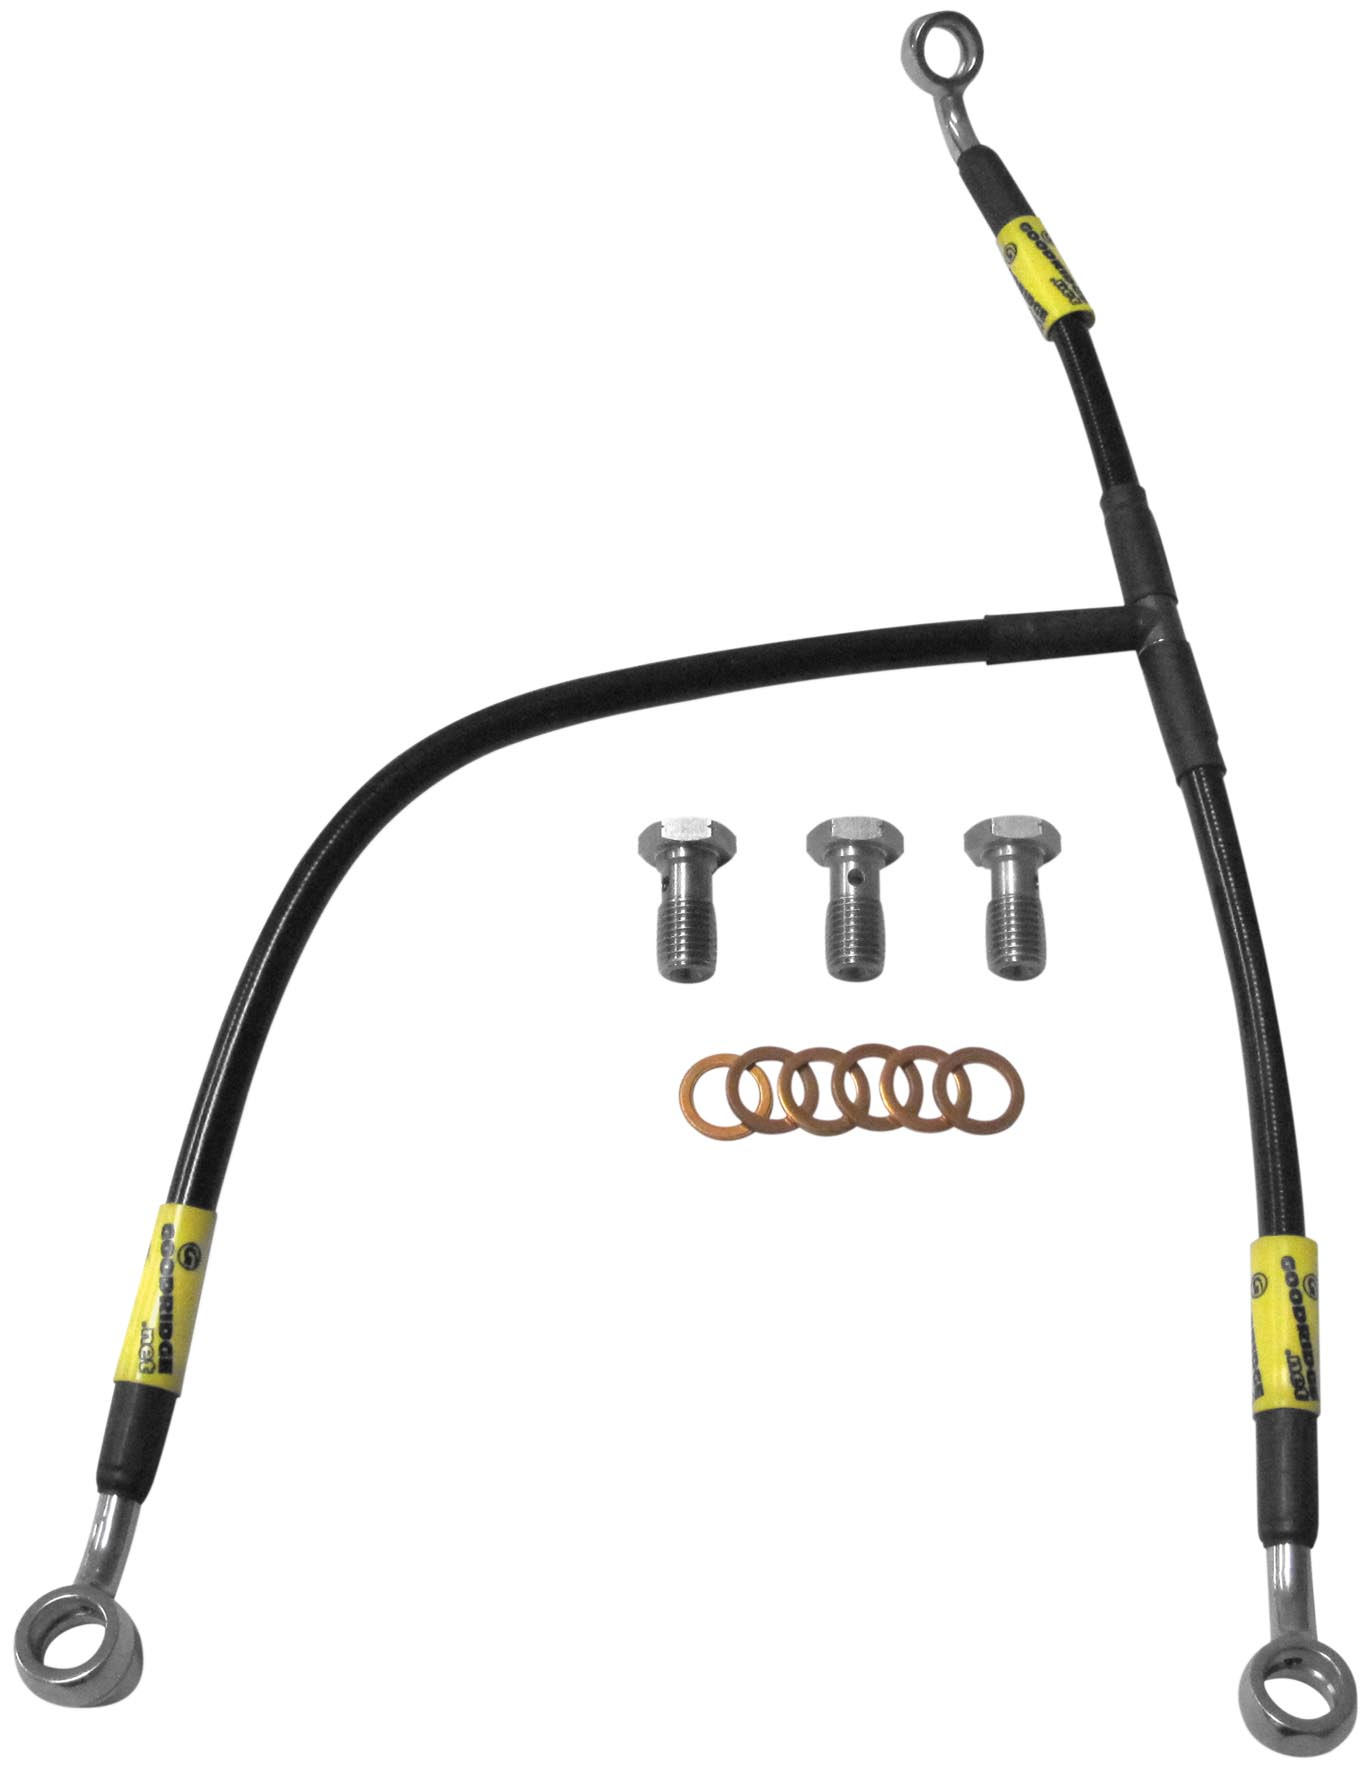 Goodridge Superbike Pro Brake Line Kit